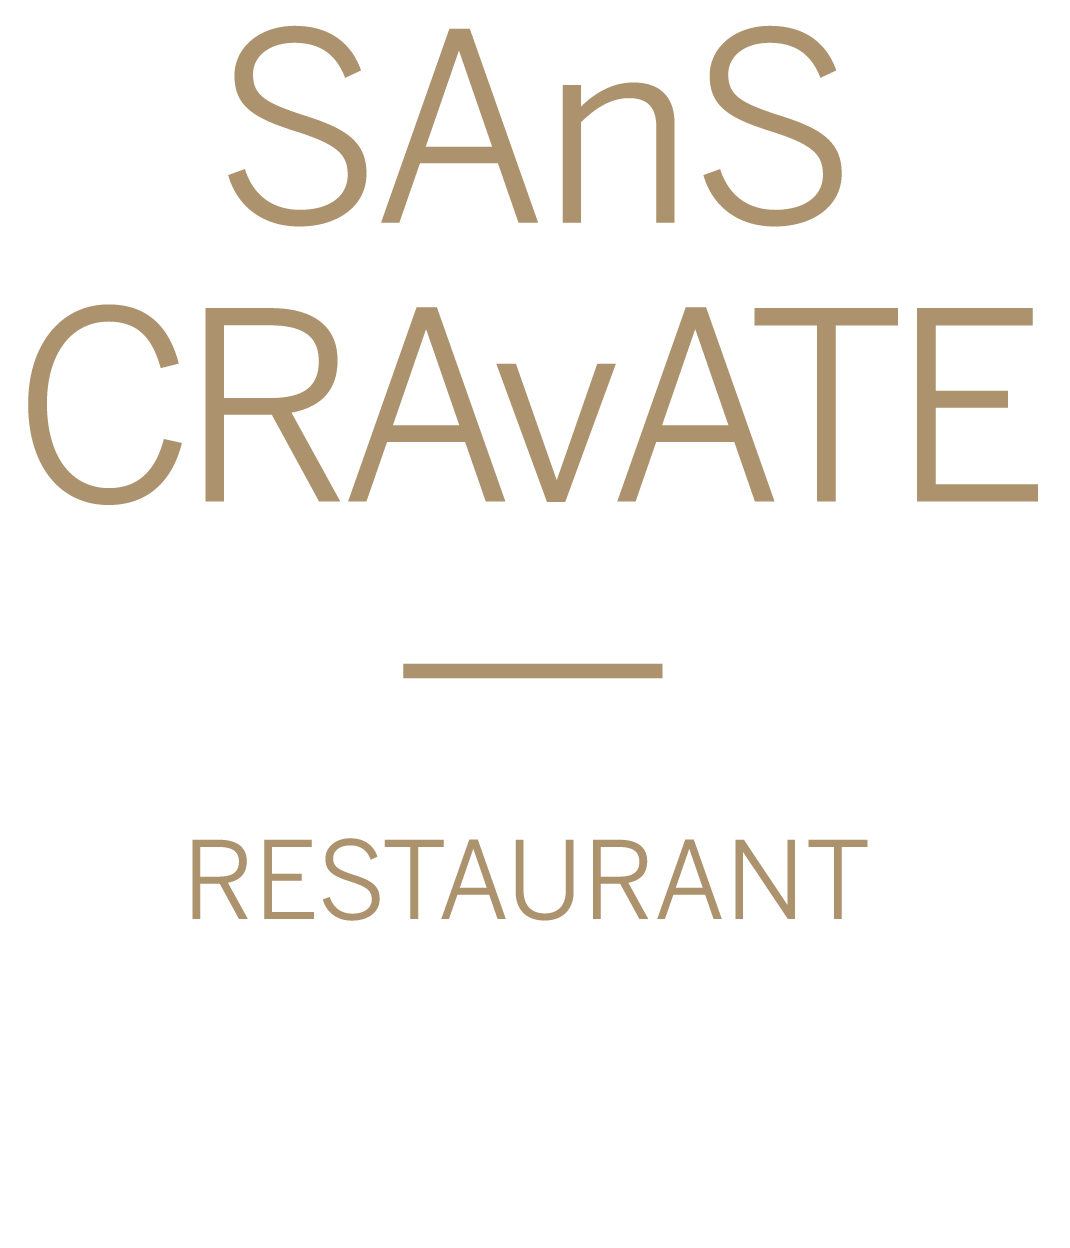 Sans Cravate Restaurant